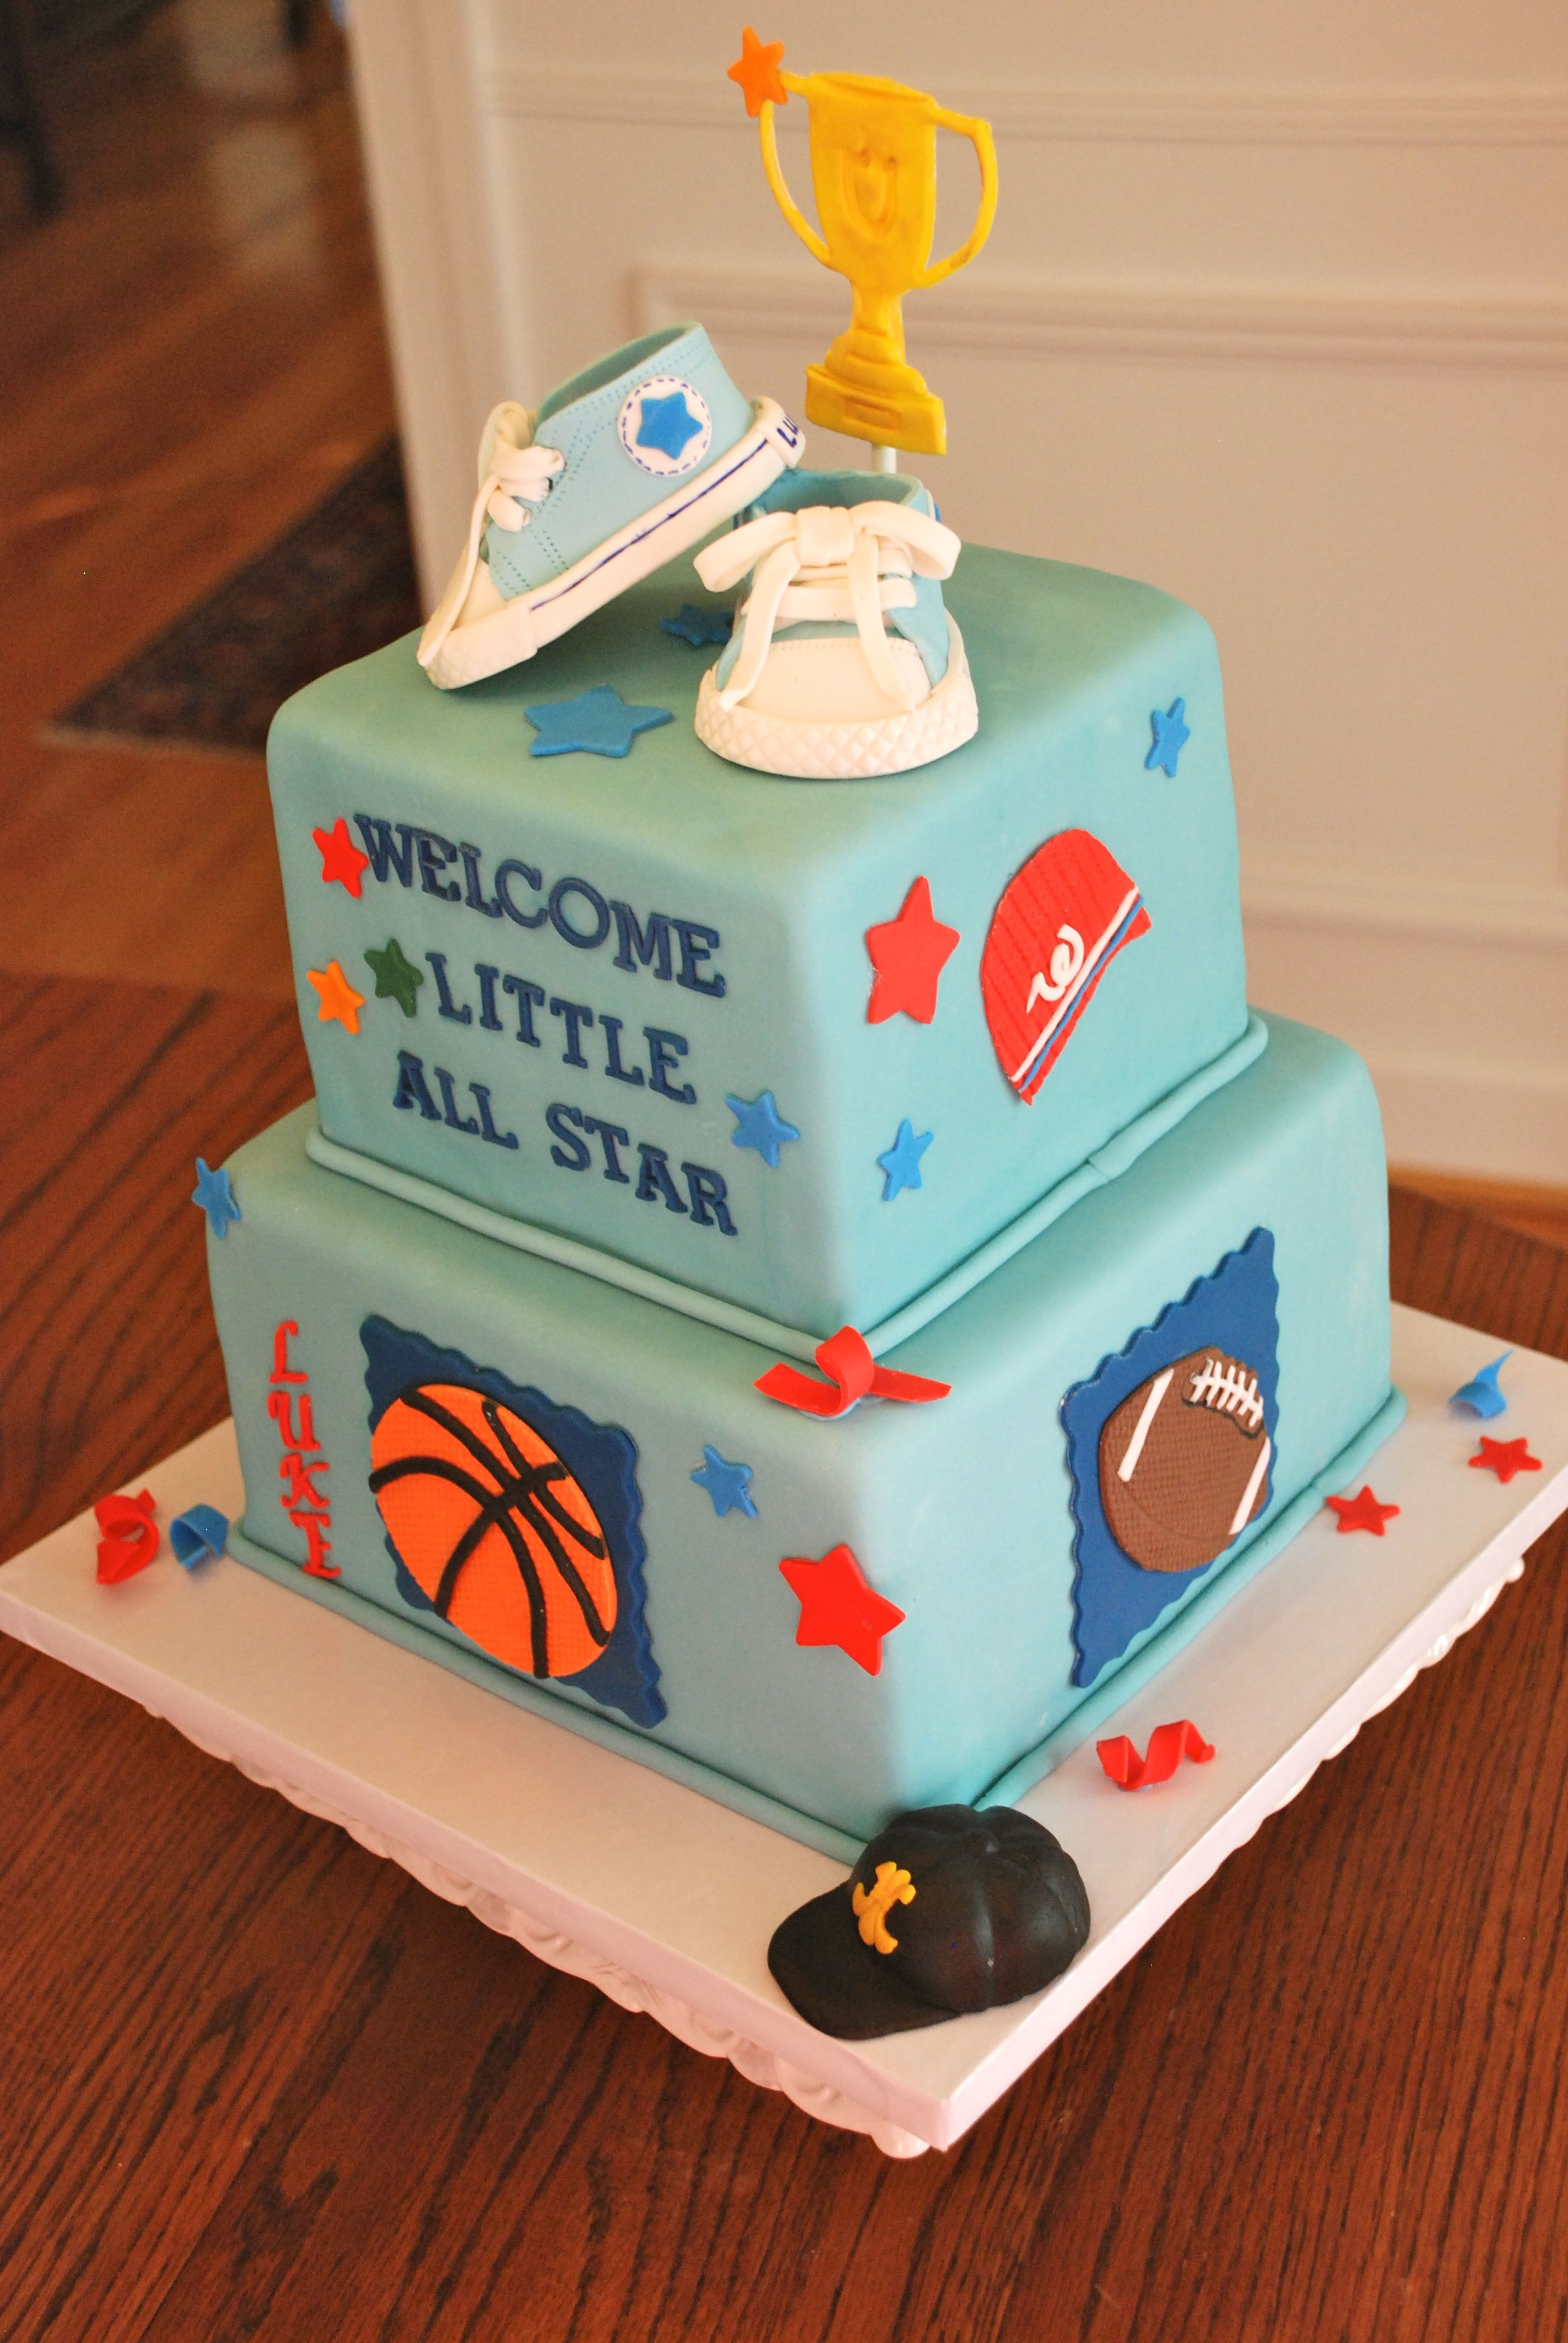 Little All Star Baby Shower Cake With Asst Sports Themes And Baby